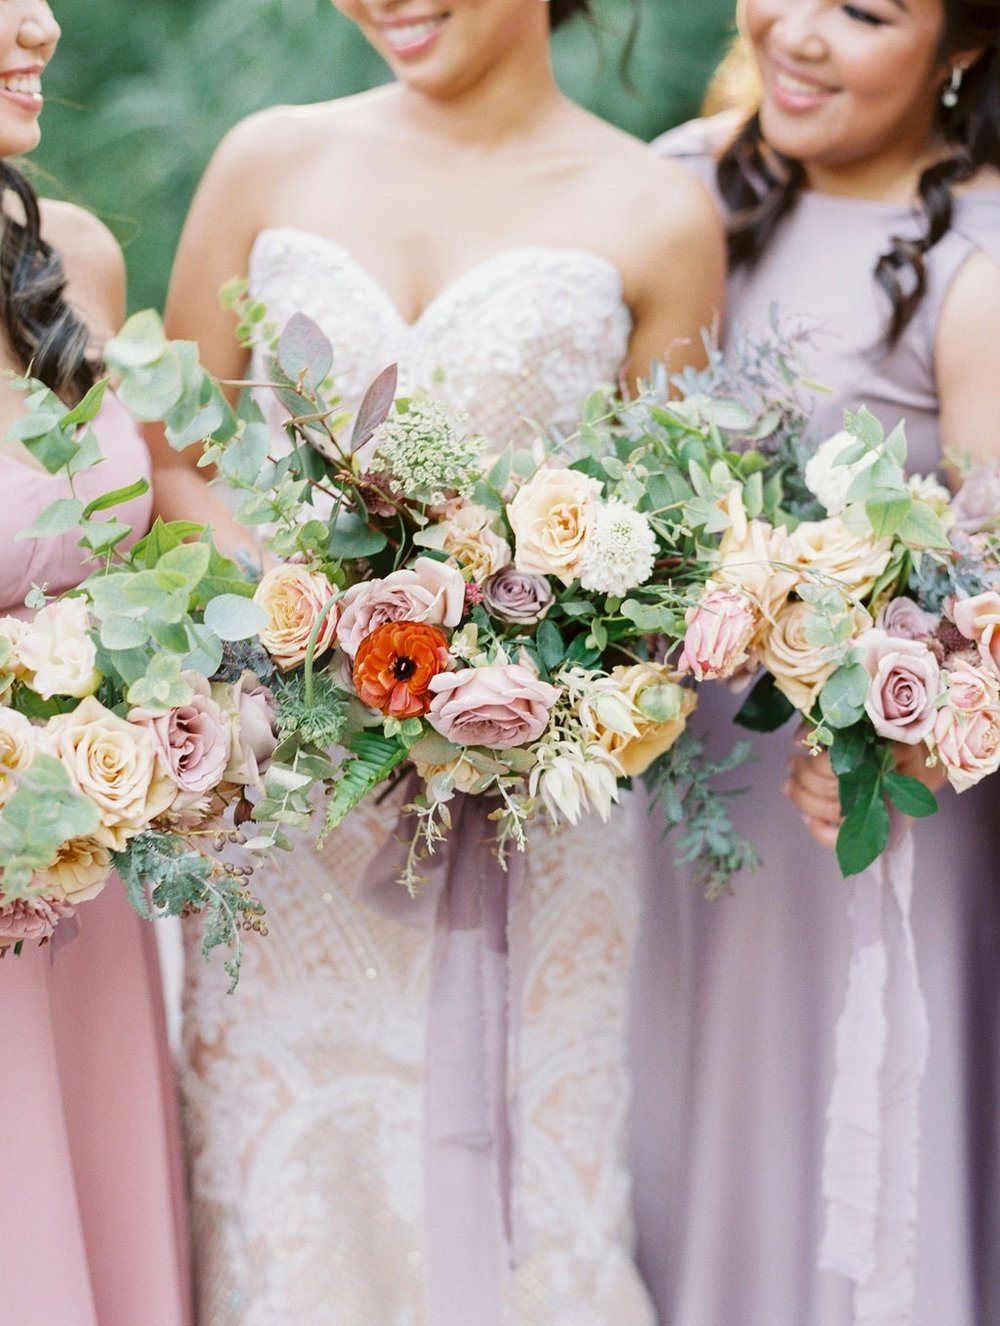 STYLE ME PRETTY FEATURE - A lush, autumn wedding with stone fruit accents at Rancho Las LomasVIEW NOW